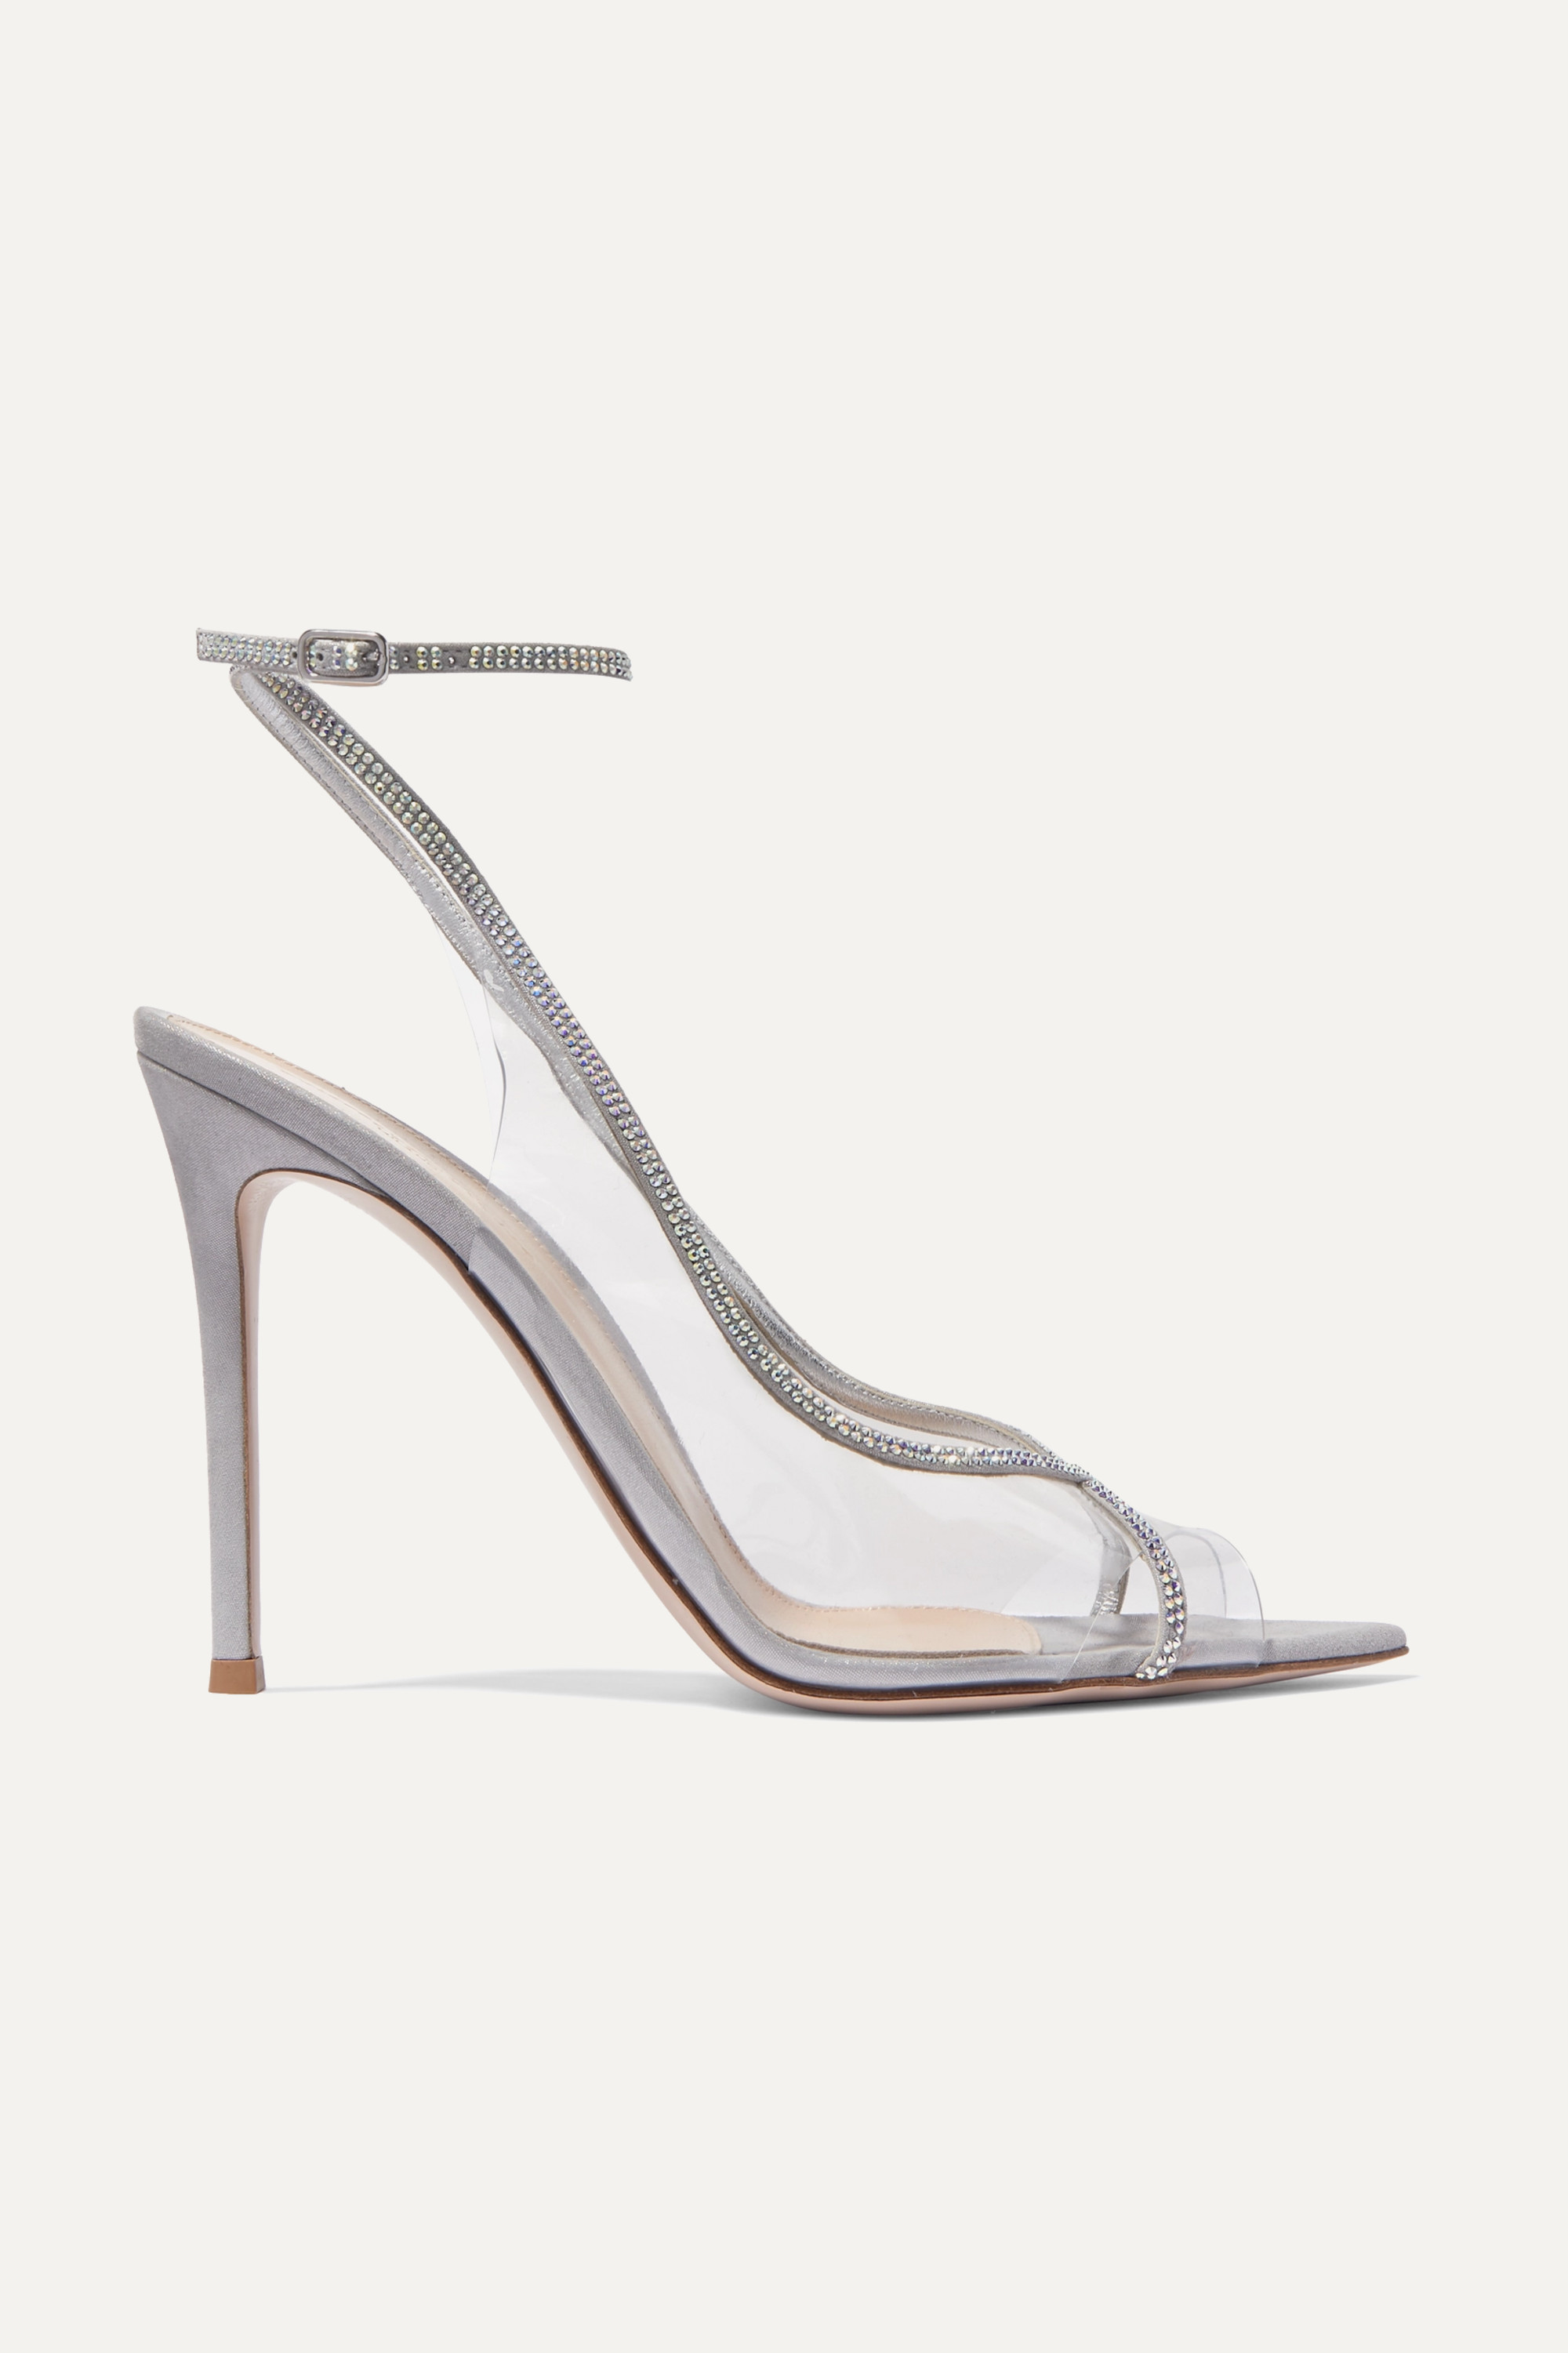 Gianvito Rossi Plexi 105 crystal-embellished lamé and PVC sandals